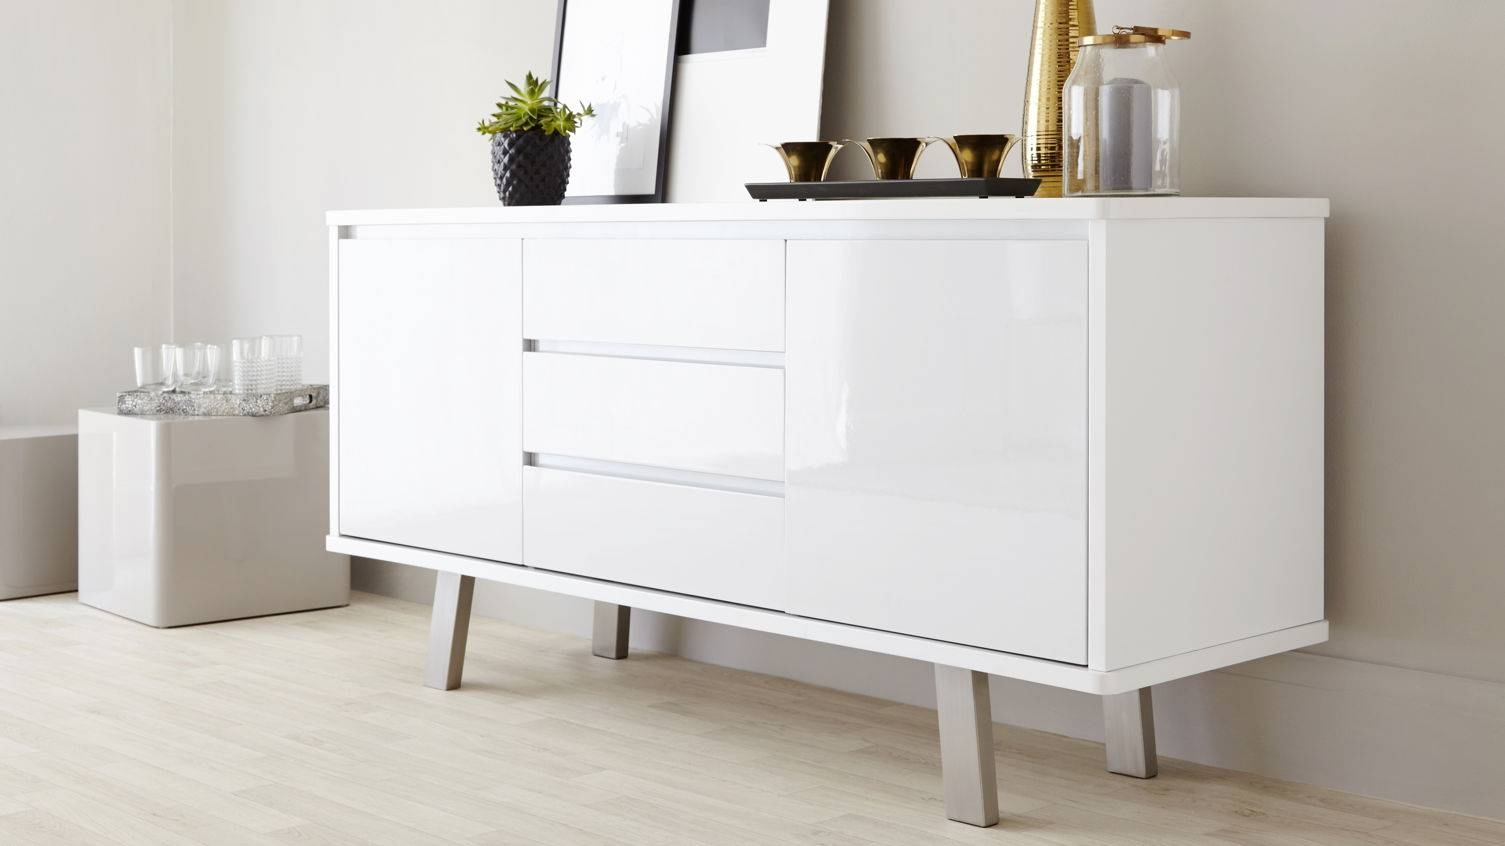 White Gloss Sideboards For Dining Room – Decor Intended For White Gloss Sideboards (#19 of 20)